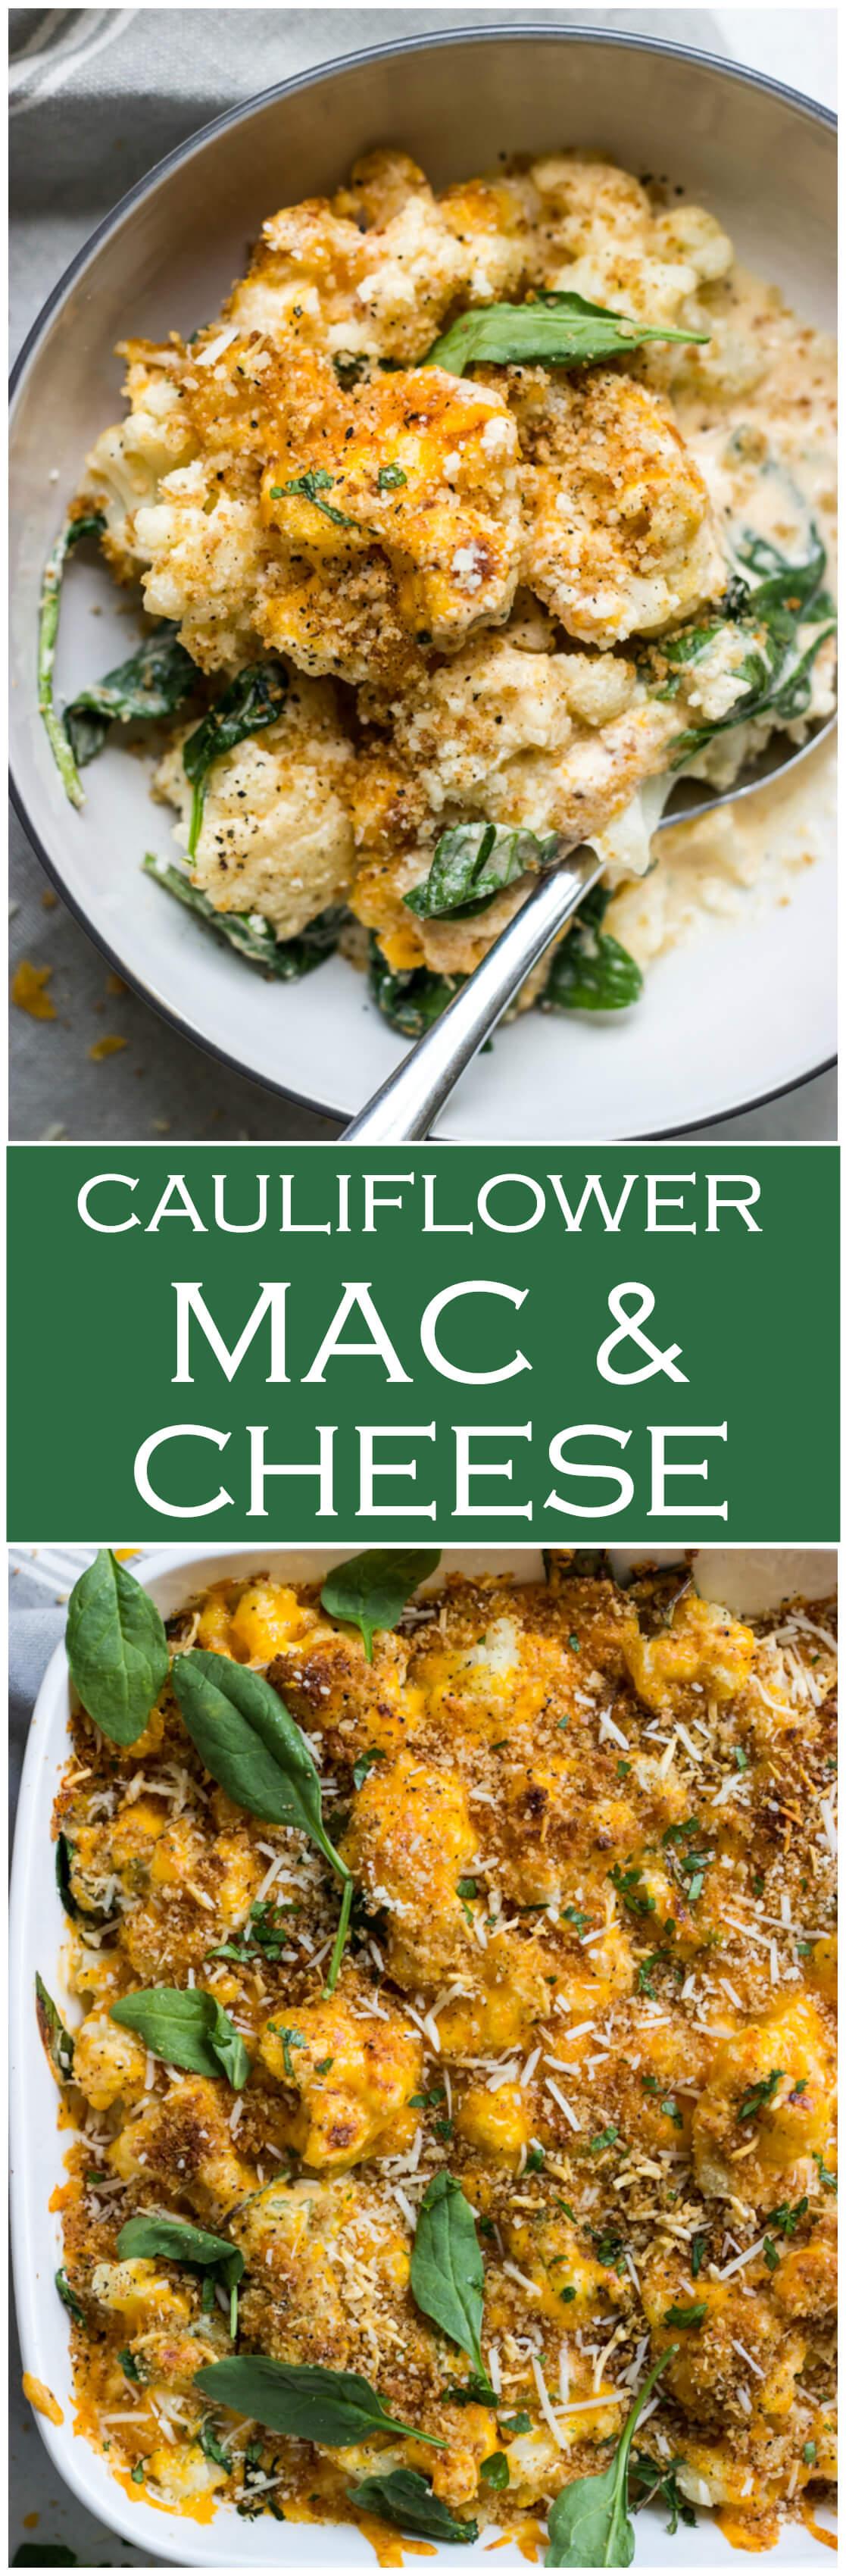 Cauliflower and Spinach Bake (Mac and Cheese) - whether you're trying to sneak more vegetables into your day or cutting down on carbs, this delicious side is the way to go!